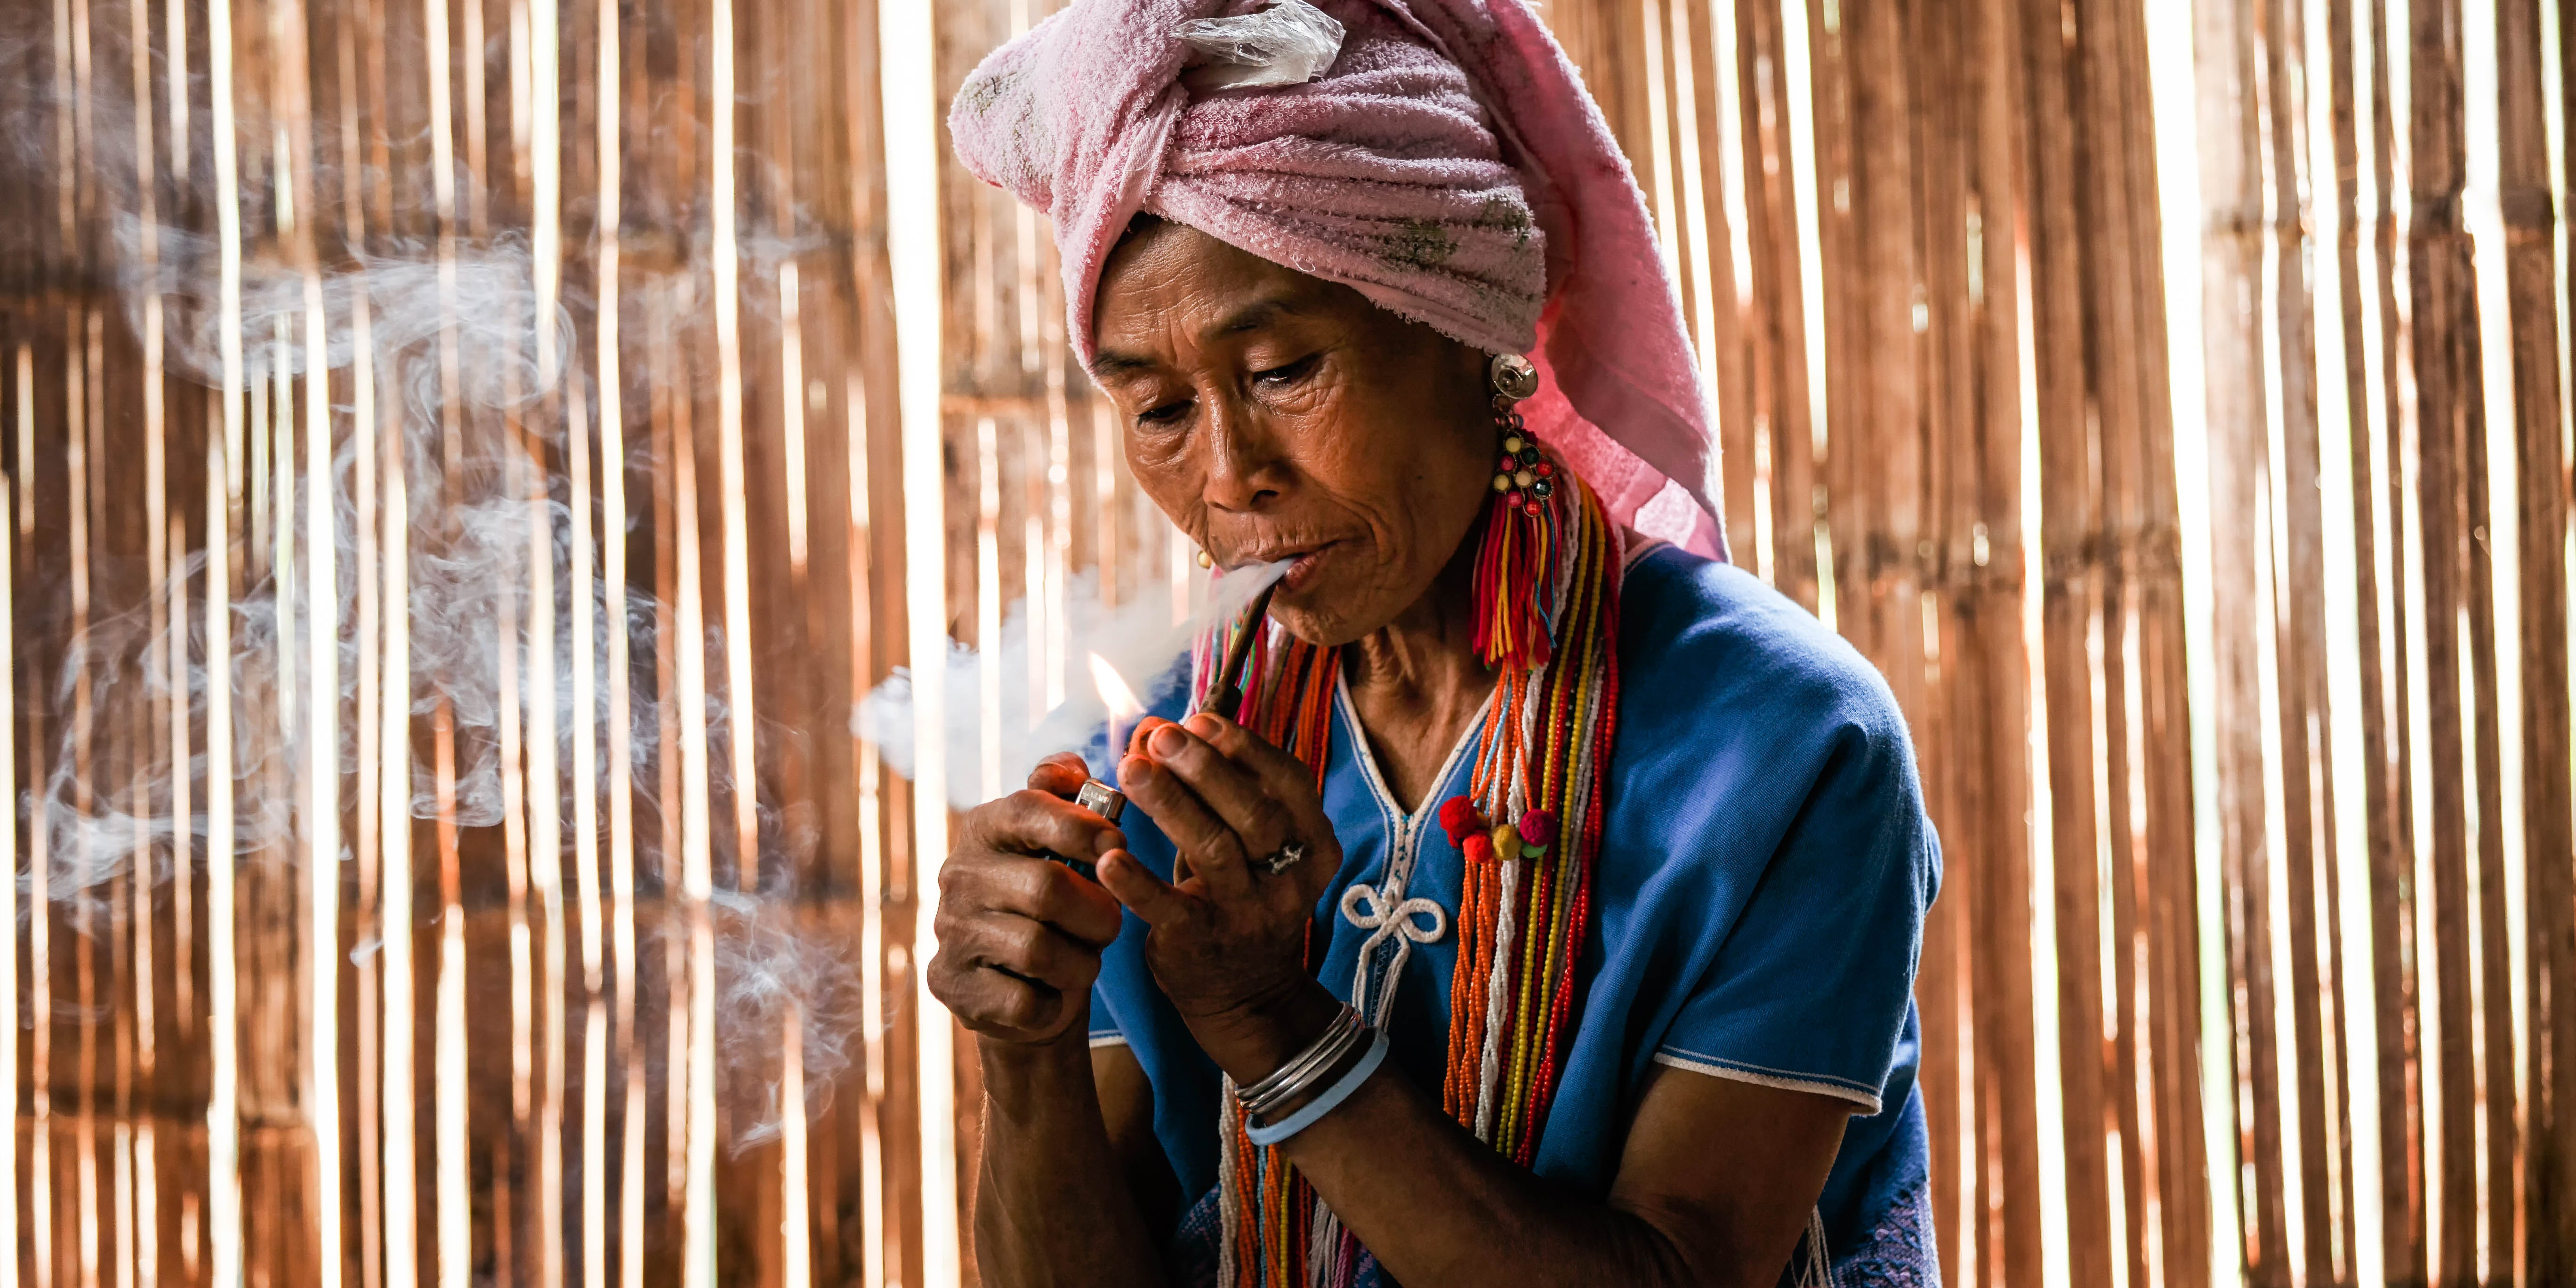 A member of Thailand's karen hill tribe smokes from a tobacco pipe in the Chiang Mai Province. (Photo by Pakin Songmor via Getty images )